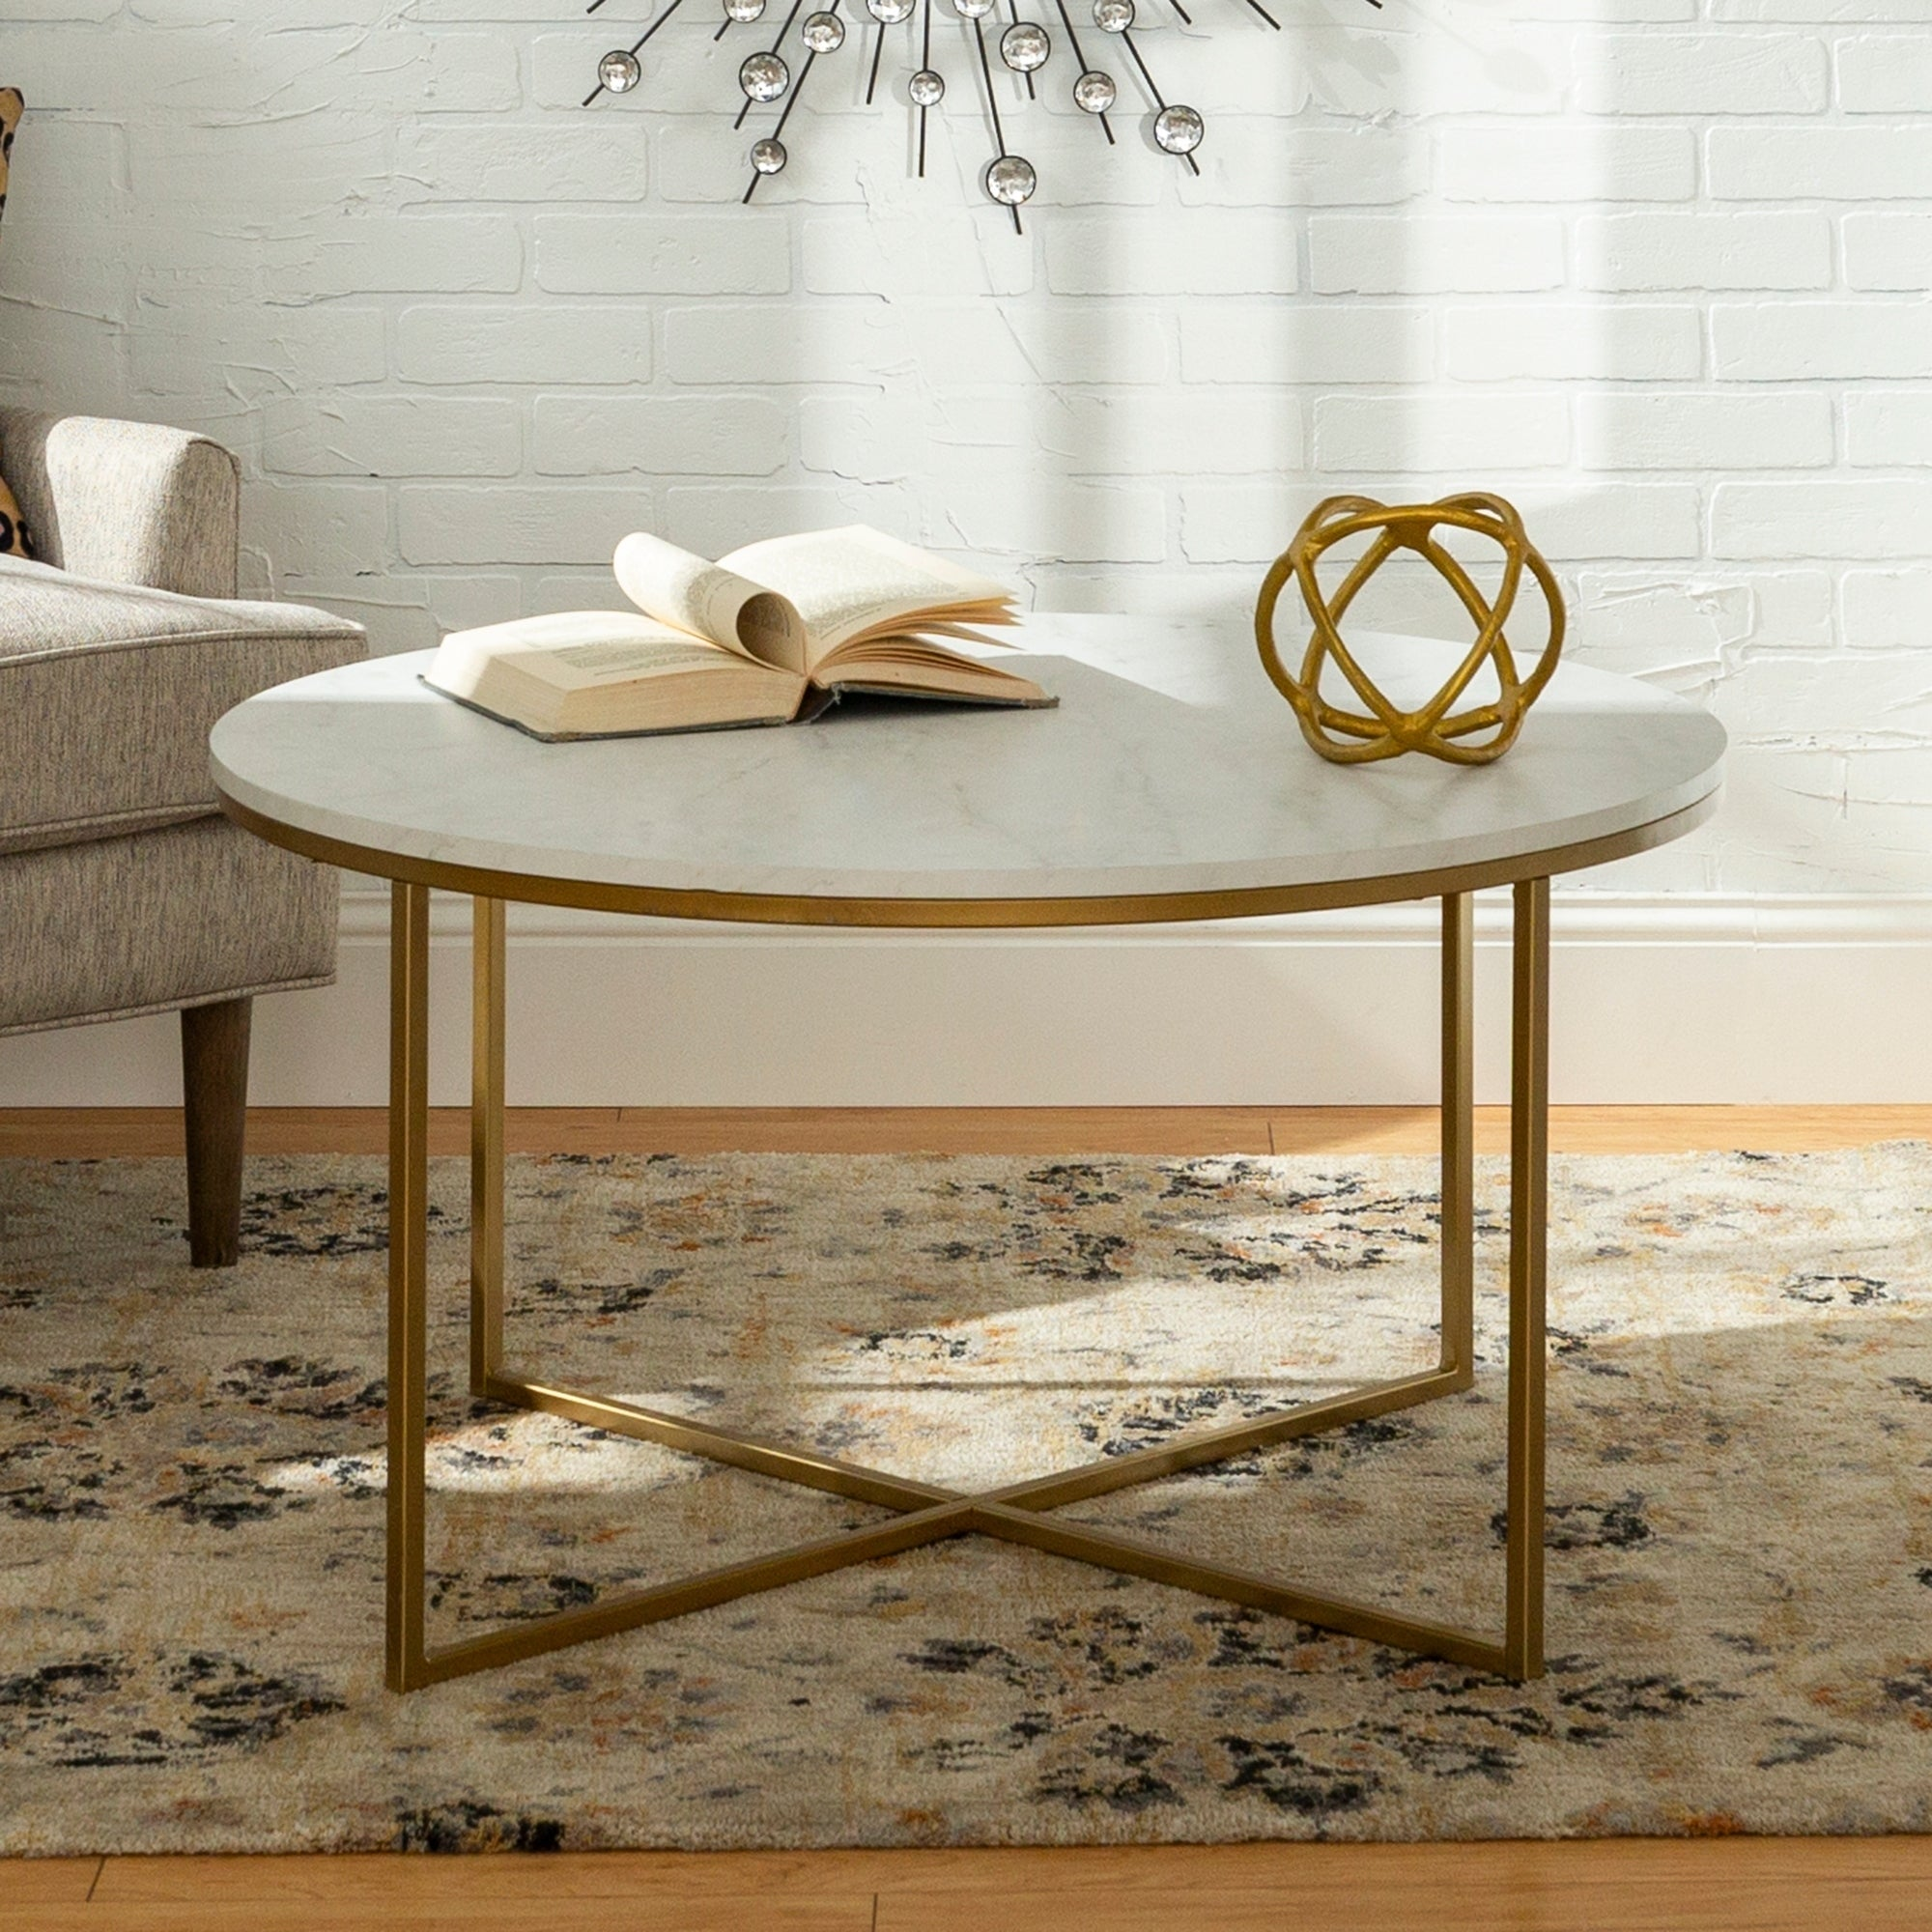 Round Coffee Table Images 9